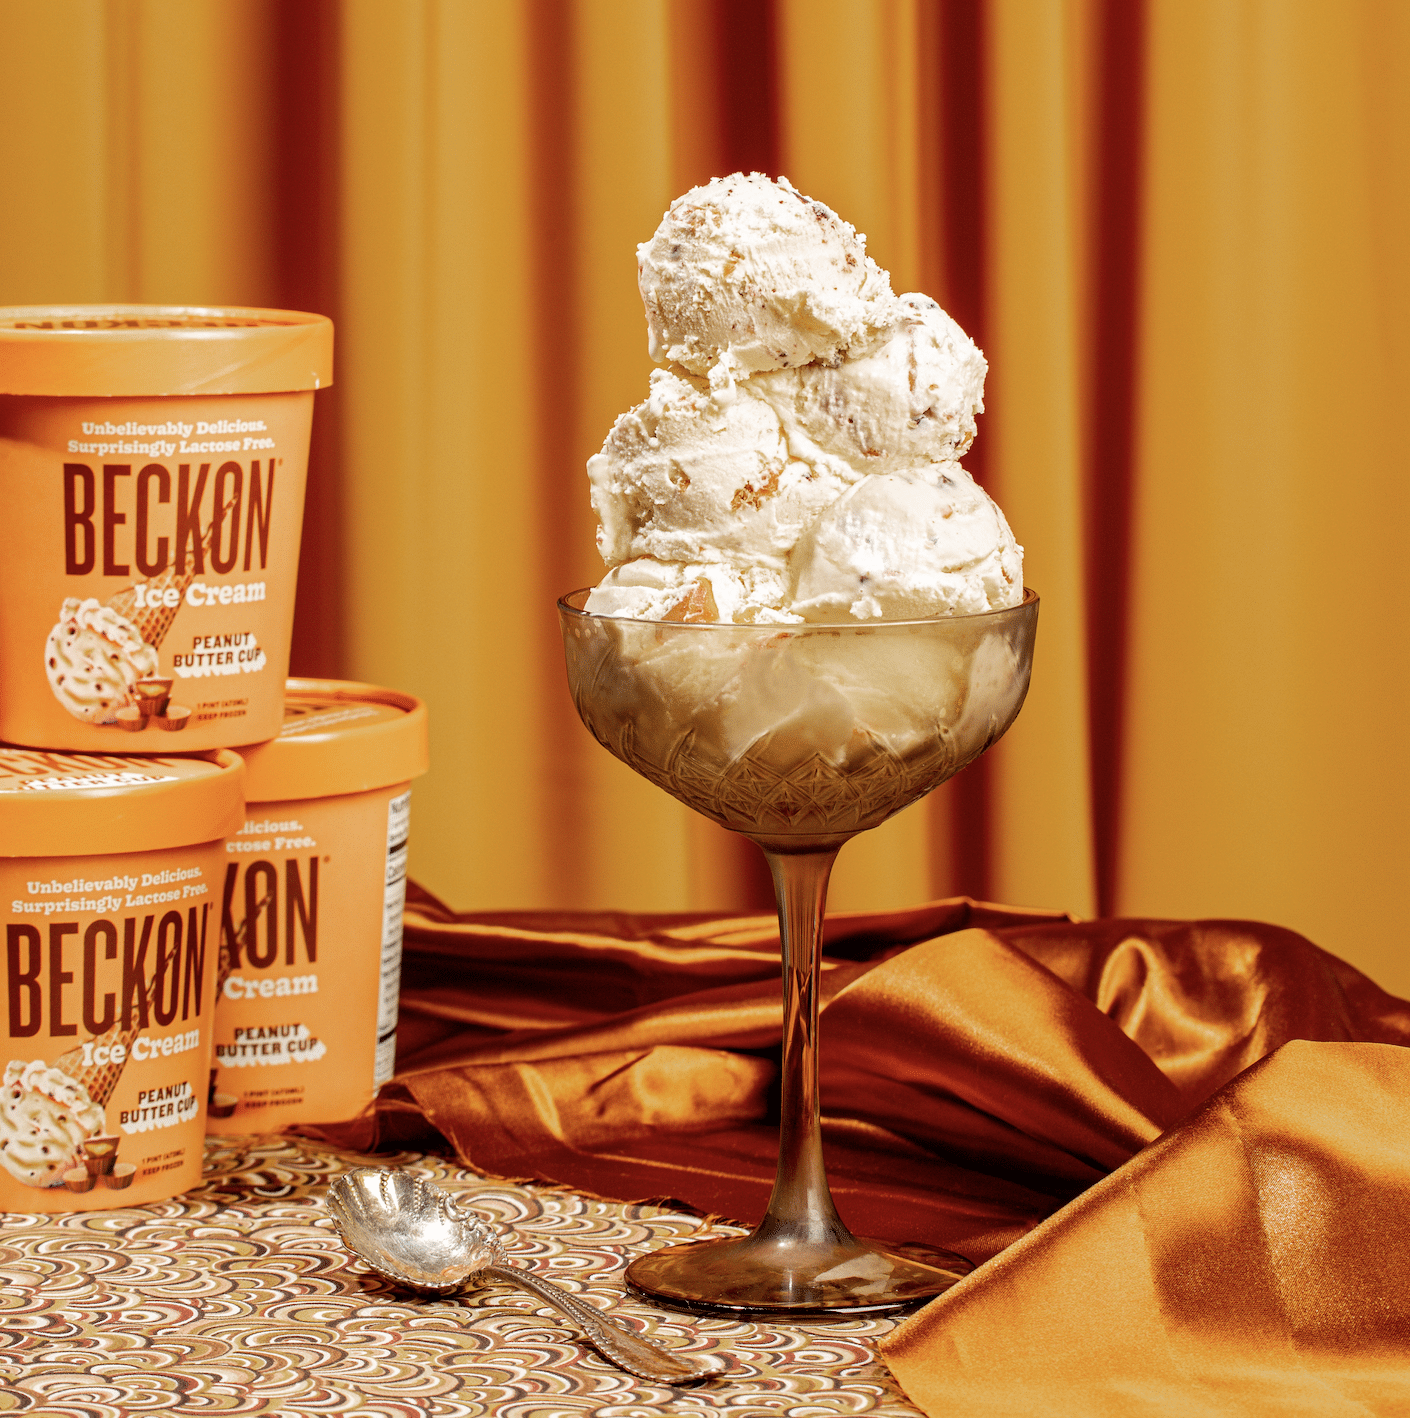 Beckon Releases First-Ever Lactose-Free Flavor with Upcycled Mix-ins